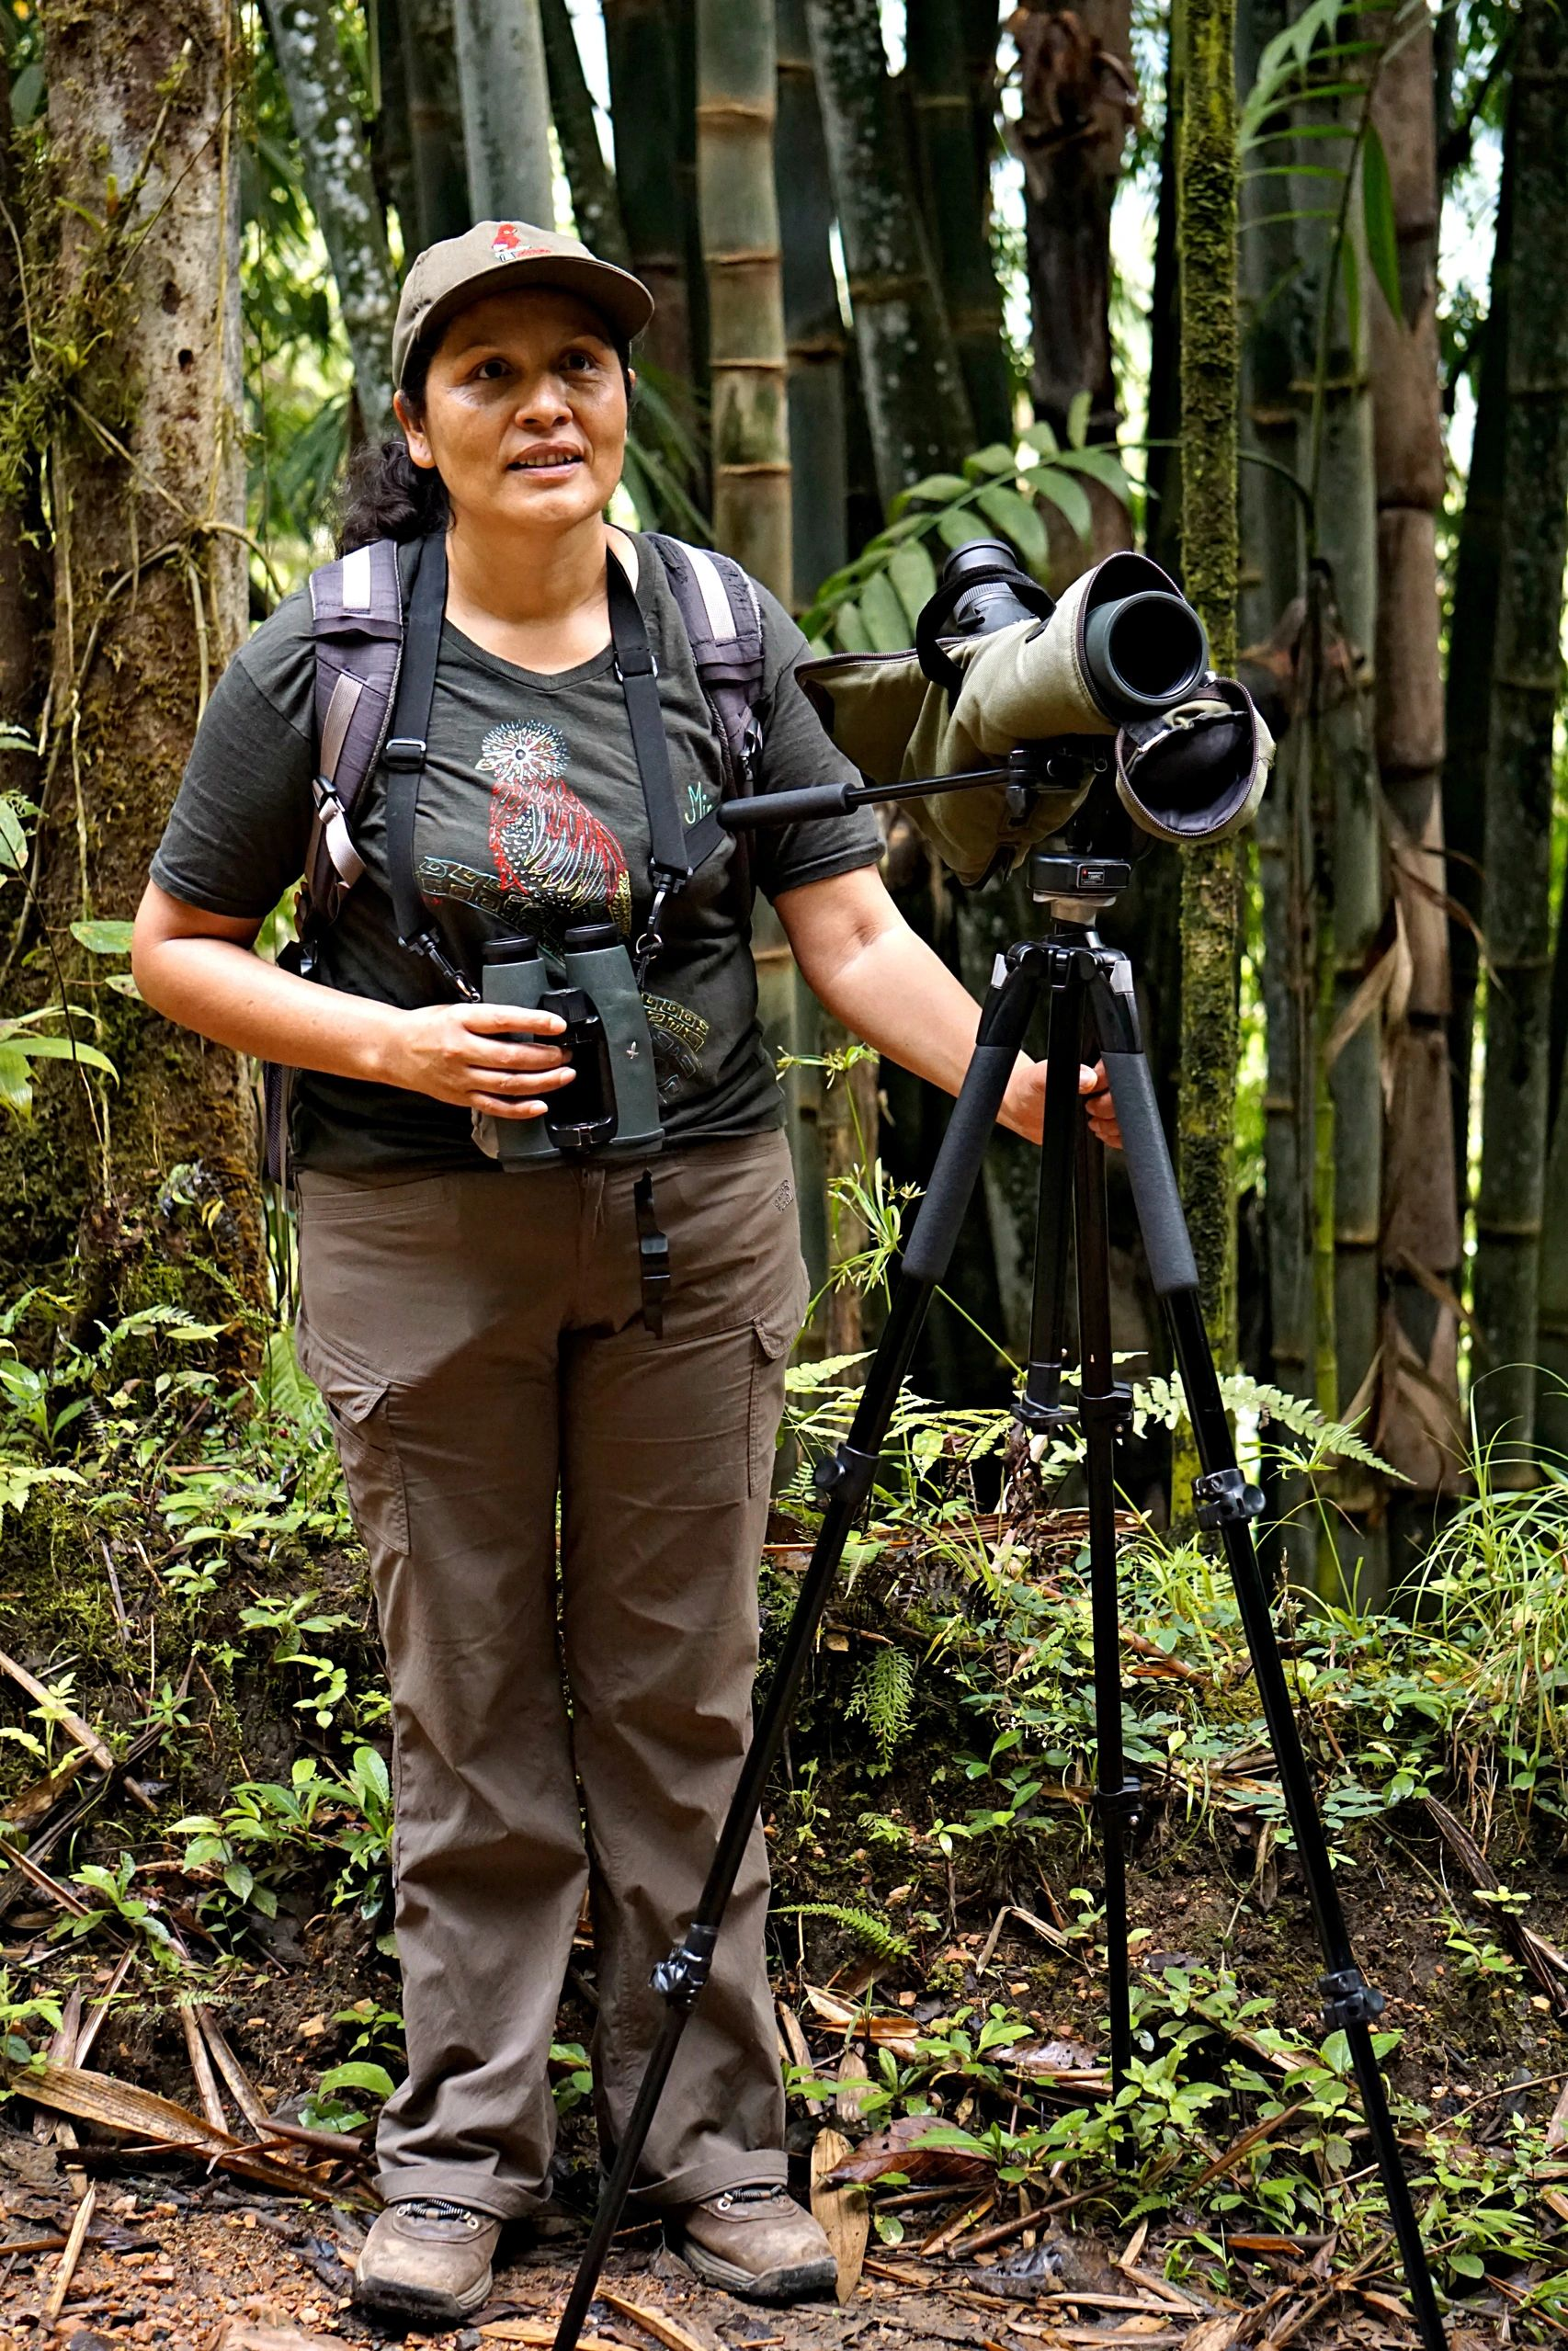 Female bird guide with spotting scope in Mindo, Ecuador.